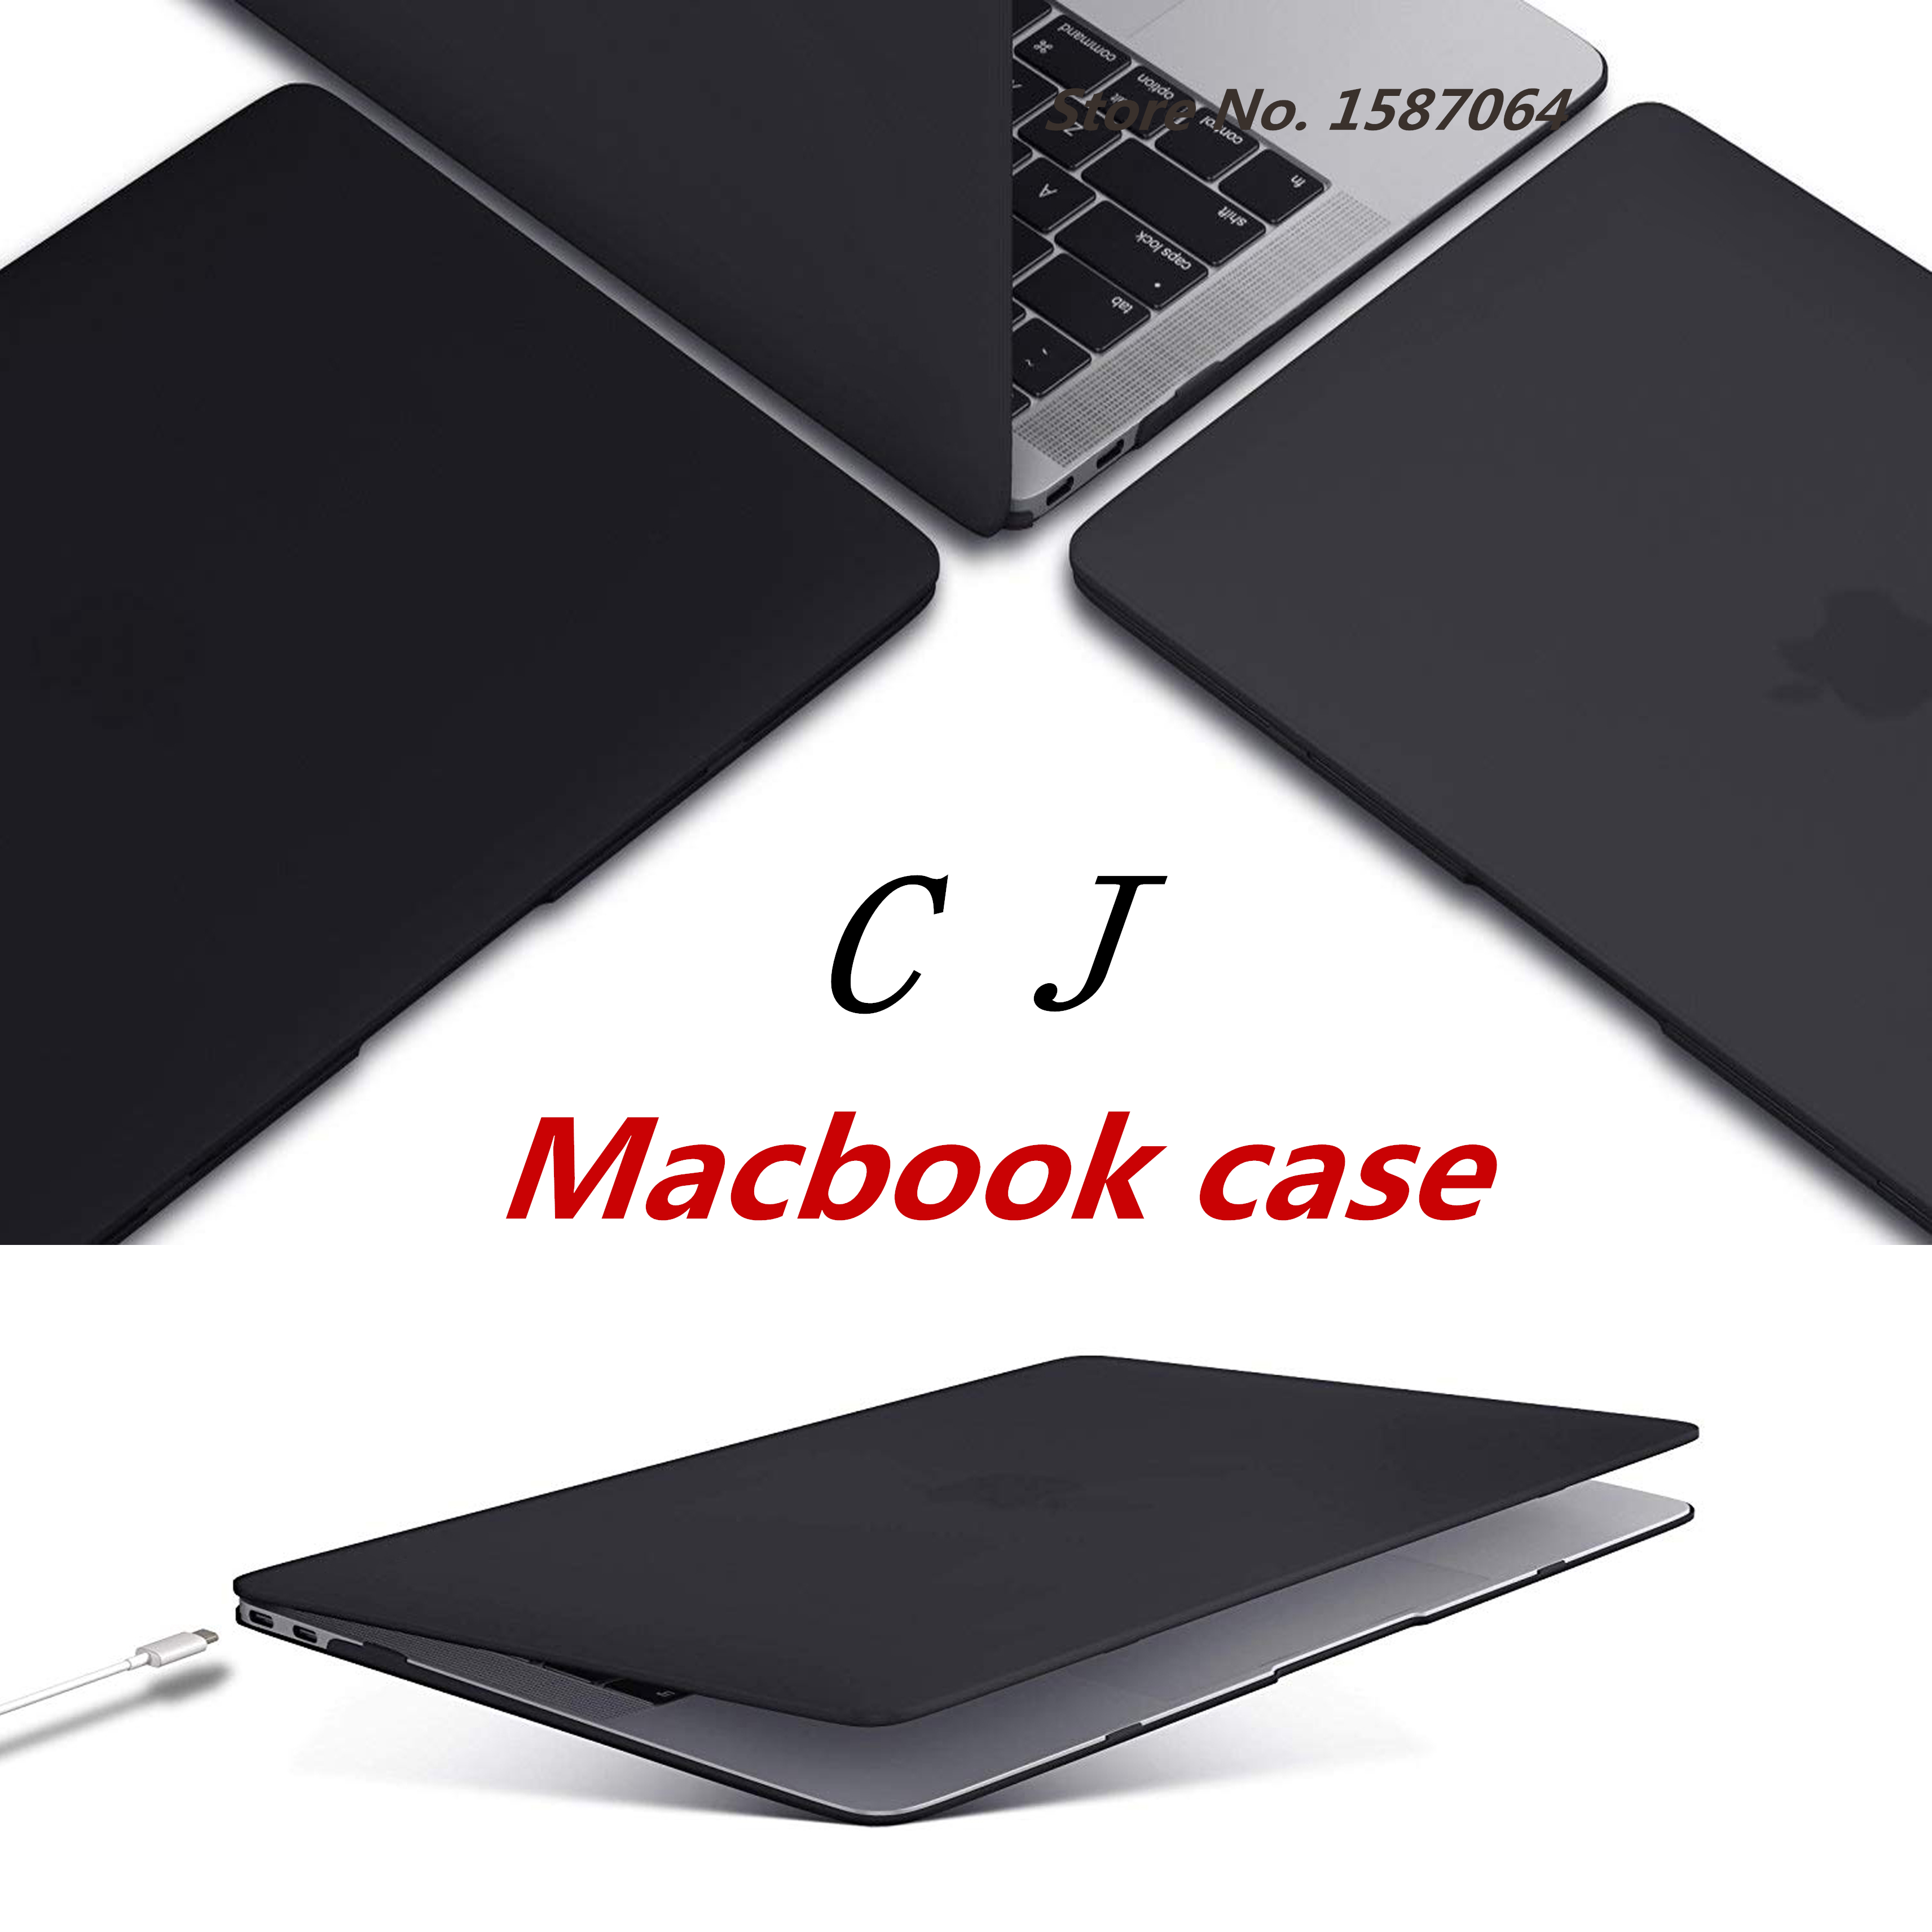 Laptop Case For Apple MacBook Air Pro Retina 11.6 12 13.3 15.4 Inch For Mac New Air 13 Pro 13 15 A2159 With Touch Bar 2018 ID